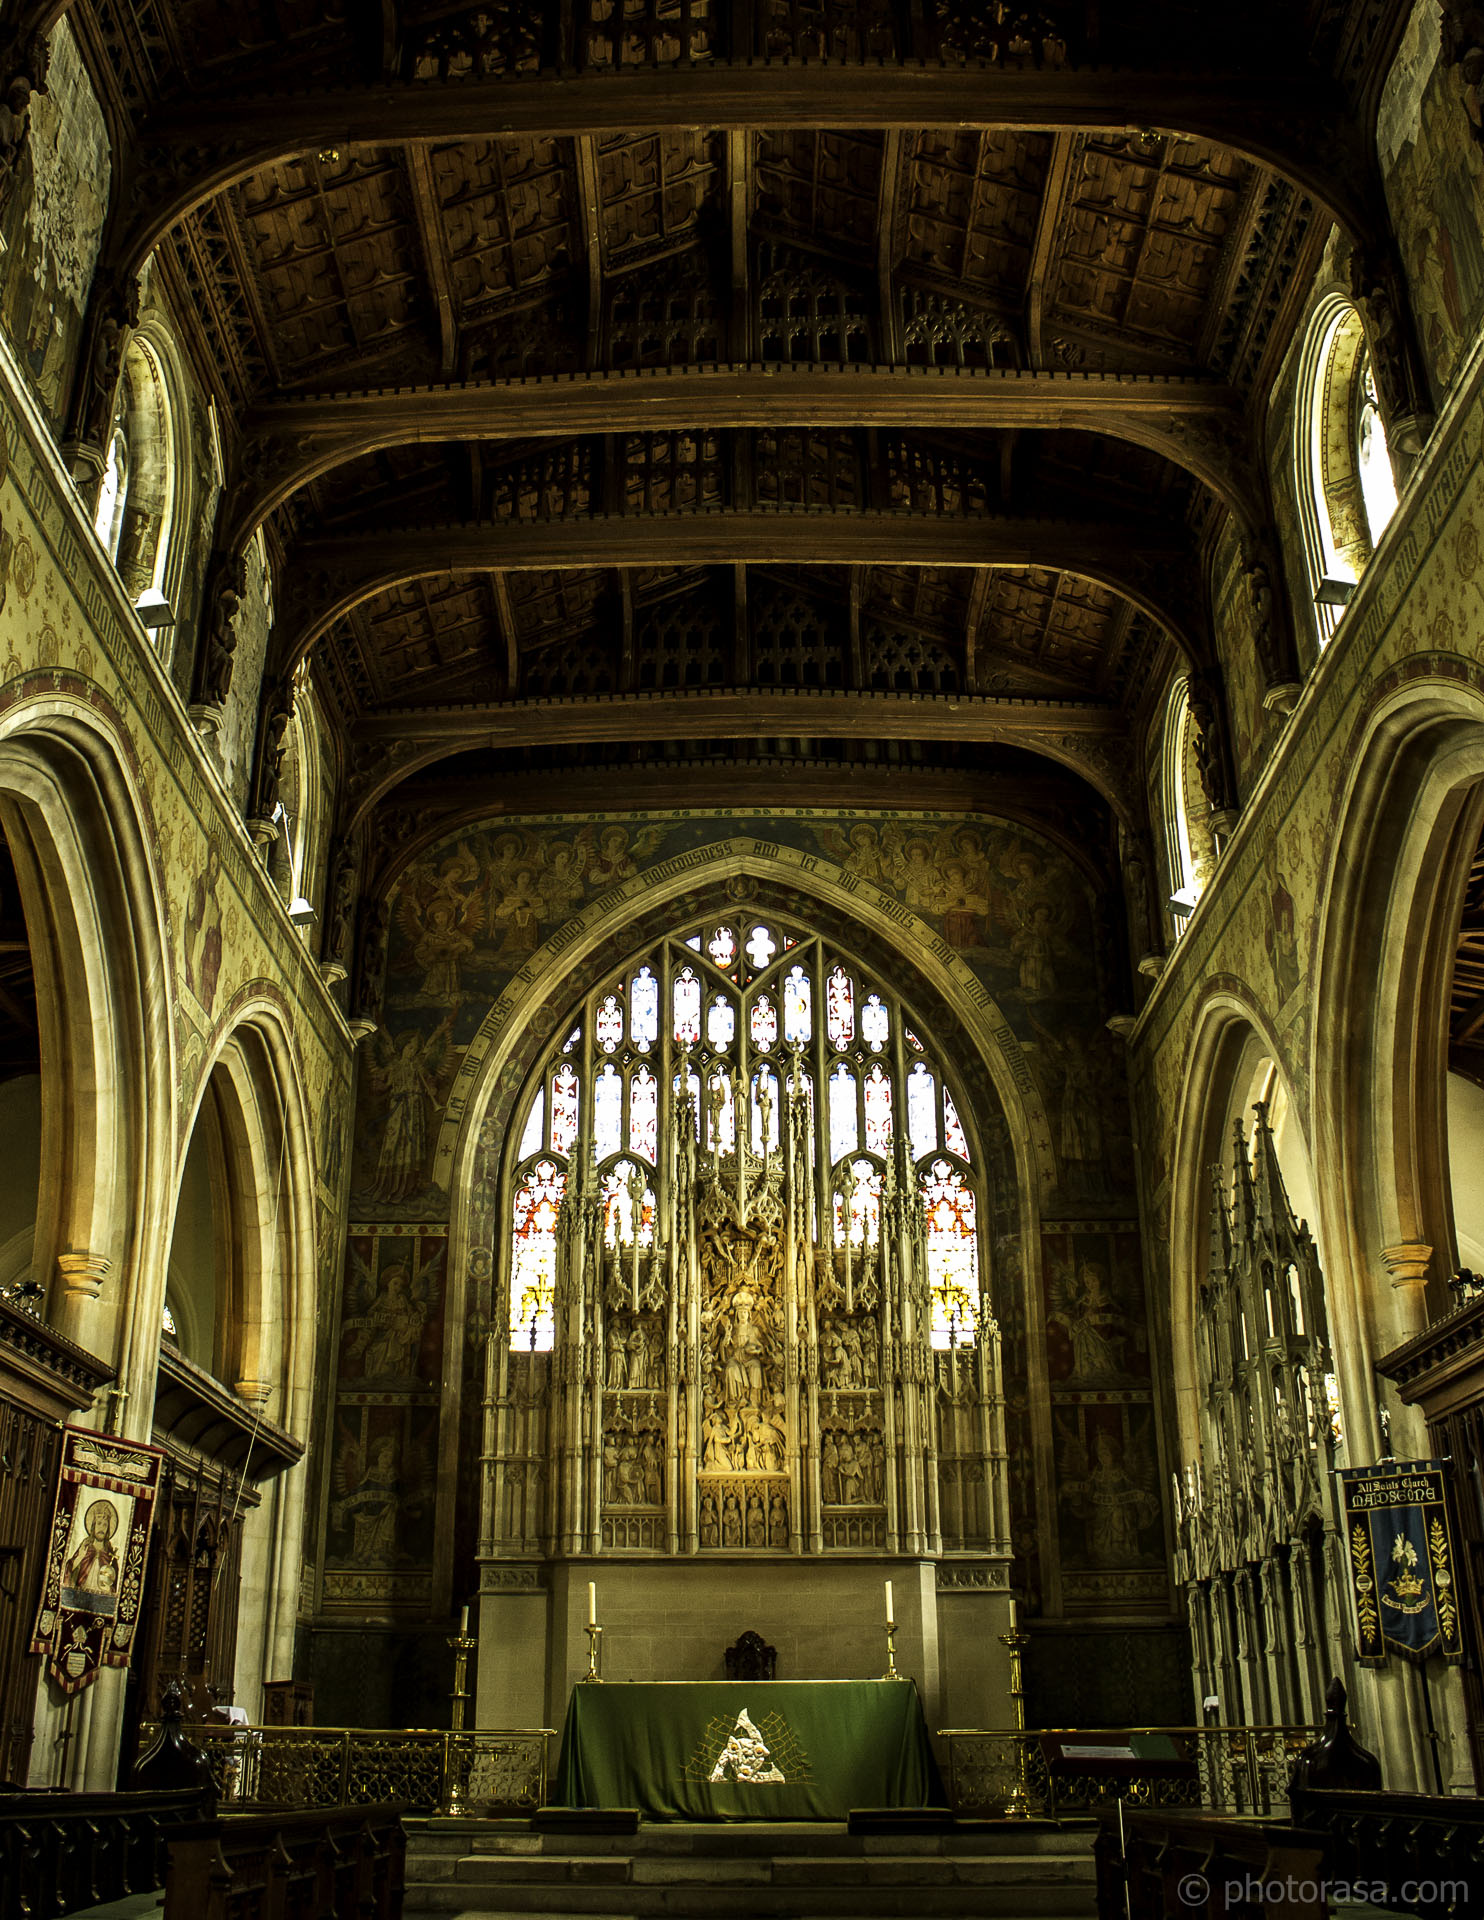 http://photorasa.com/inside-all-saints-church-in-maidstone/all-saints-sanctuary/